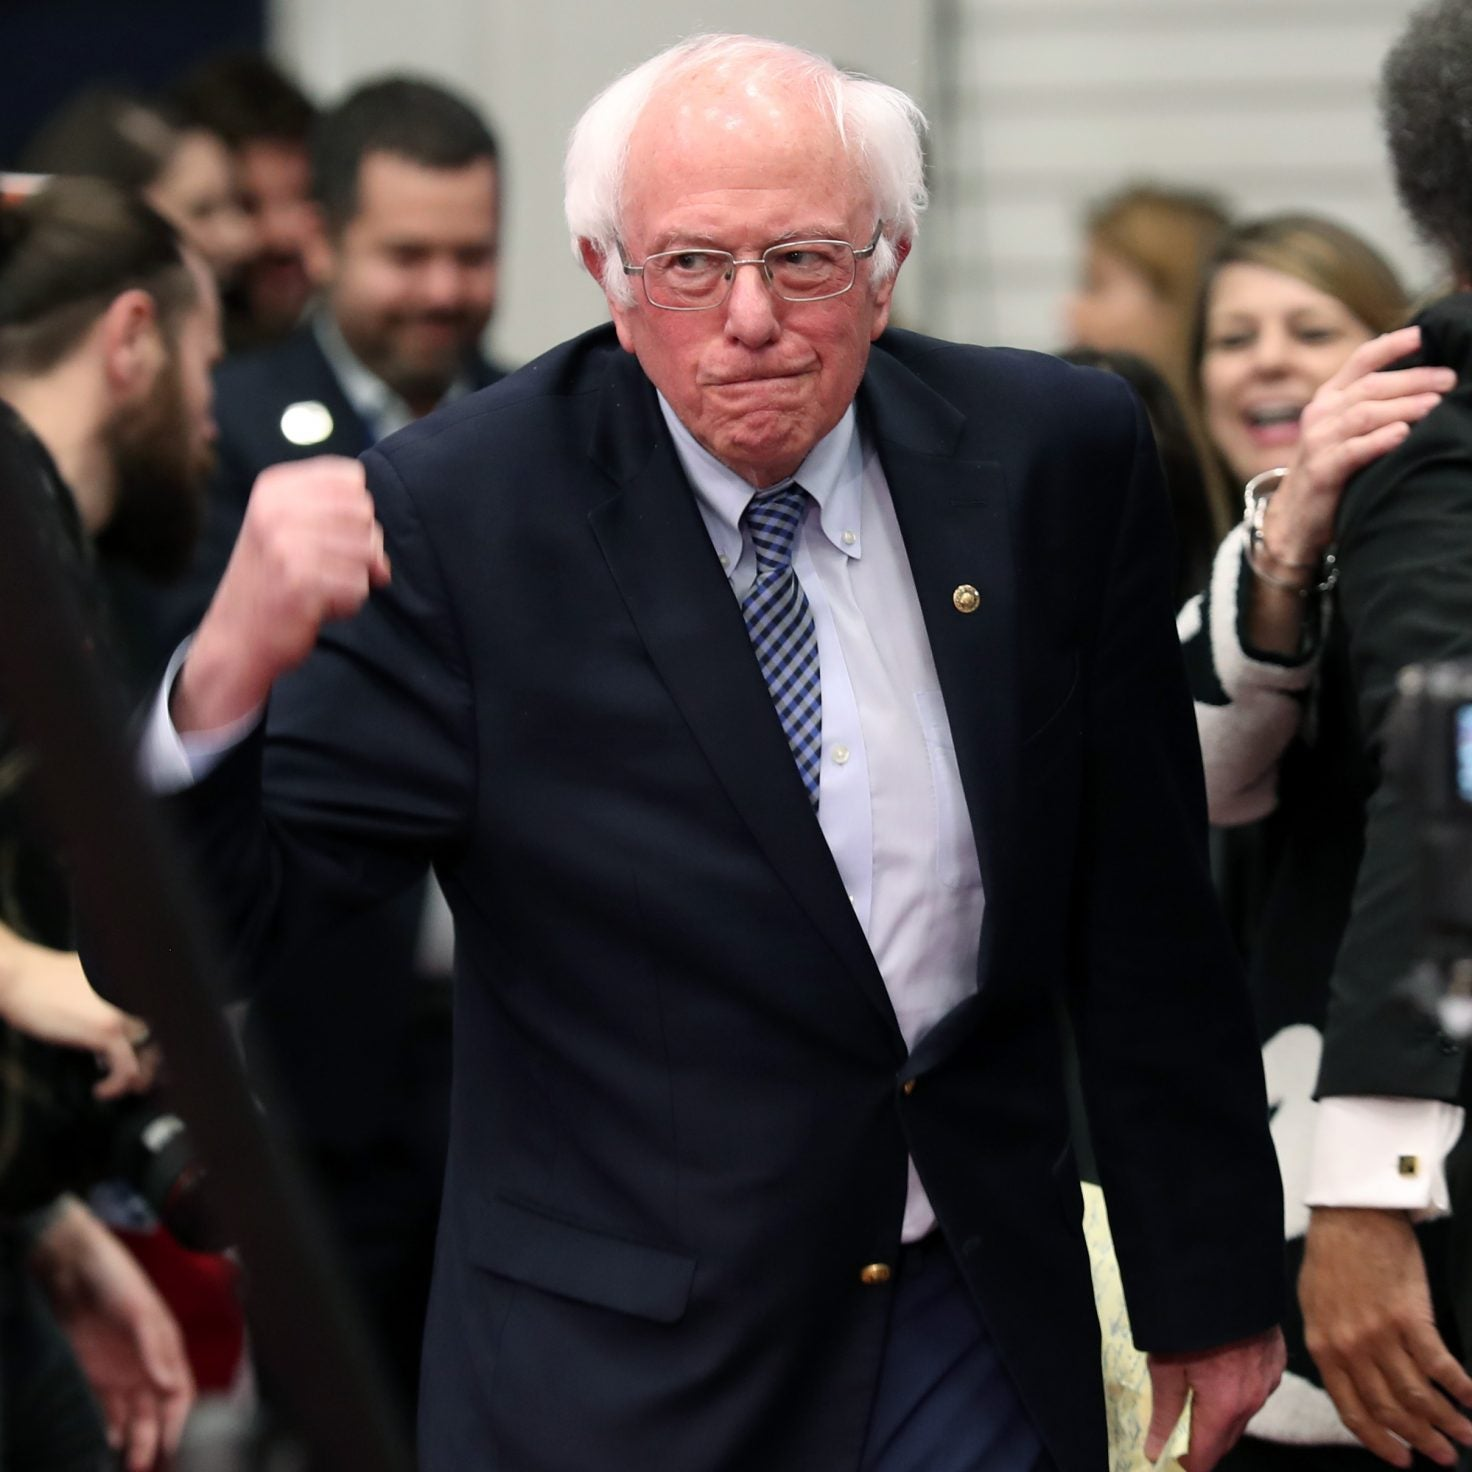 Sanders Campaign Blasts New York State Board Of Elections For Canceling Presidential Primary